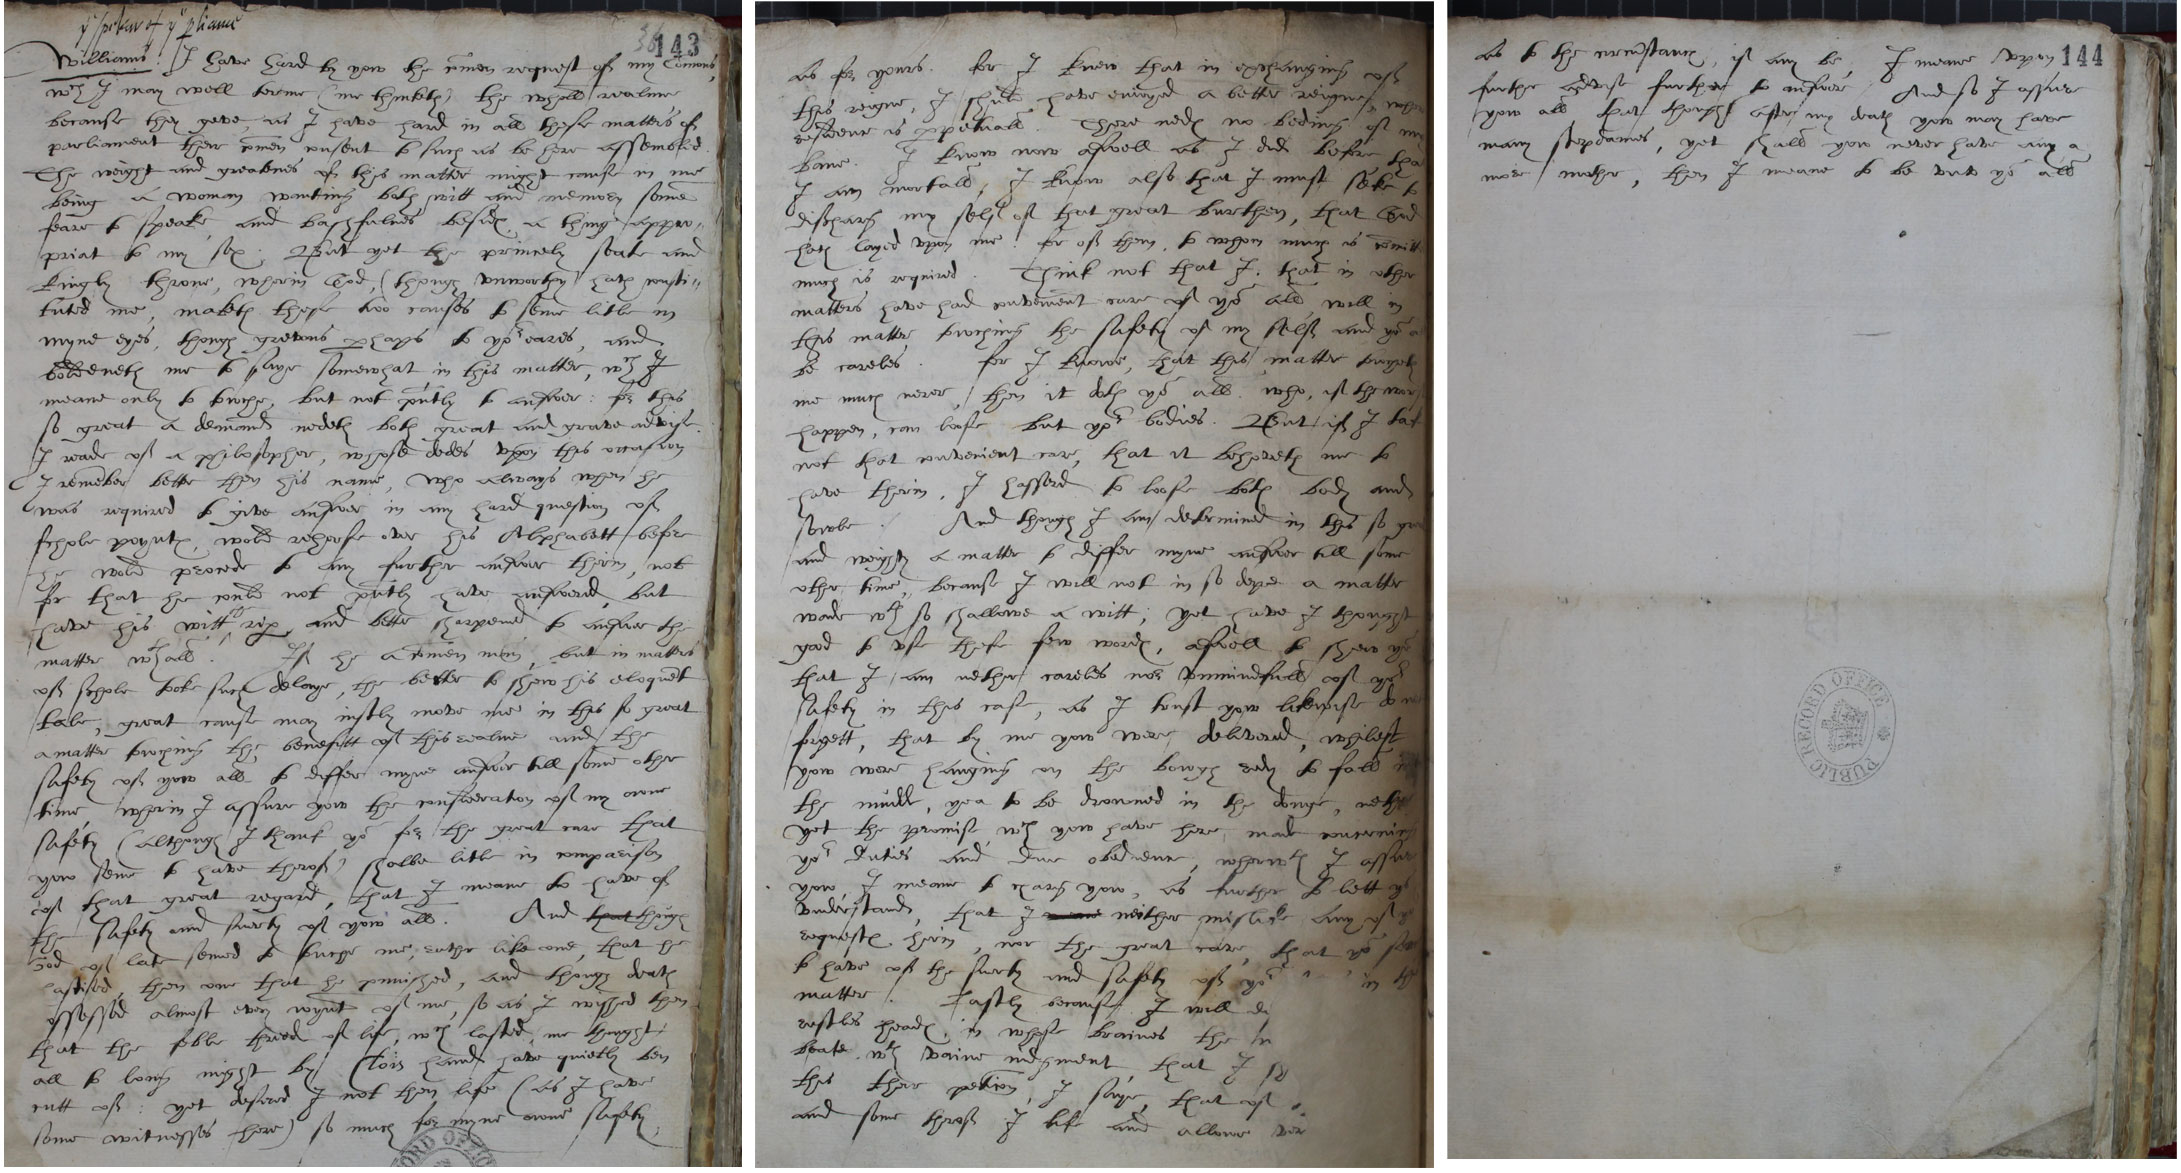 Answer of the Queen to the addresses of both Houses of Parliament delivered to Mr Speaker Thomas Williams, 28 January 1563 (SP 12/27 f.143r-144v)